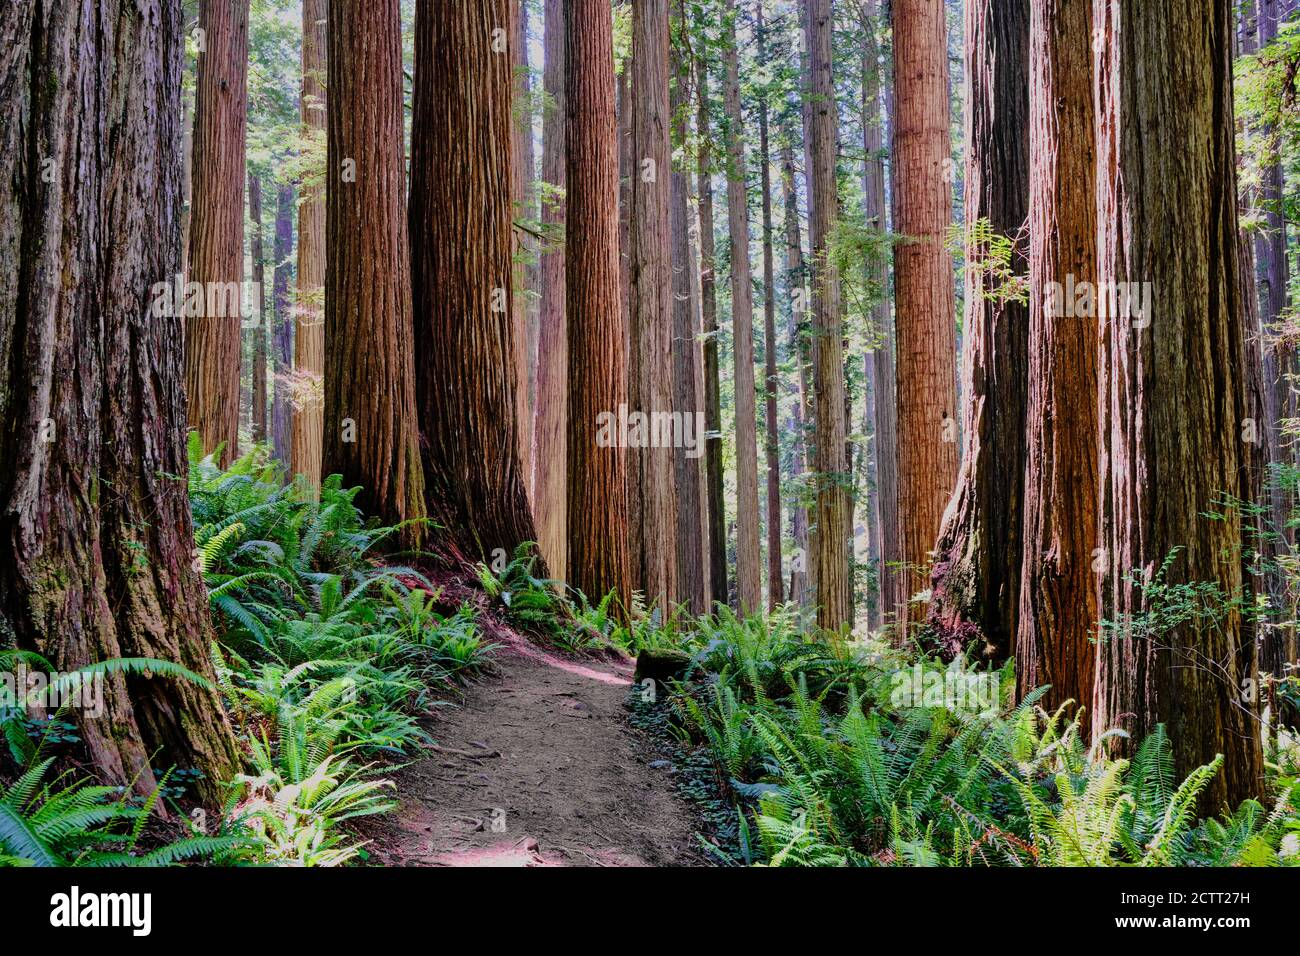 Bright green ferns on forest floor contrast with very tall, thick and straight trunks of California's mighty Redwoods as seen along a hiking trail Stock Photo